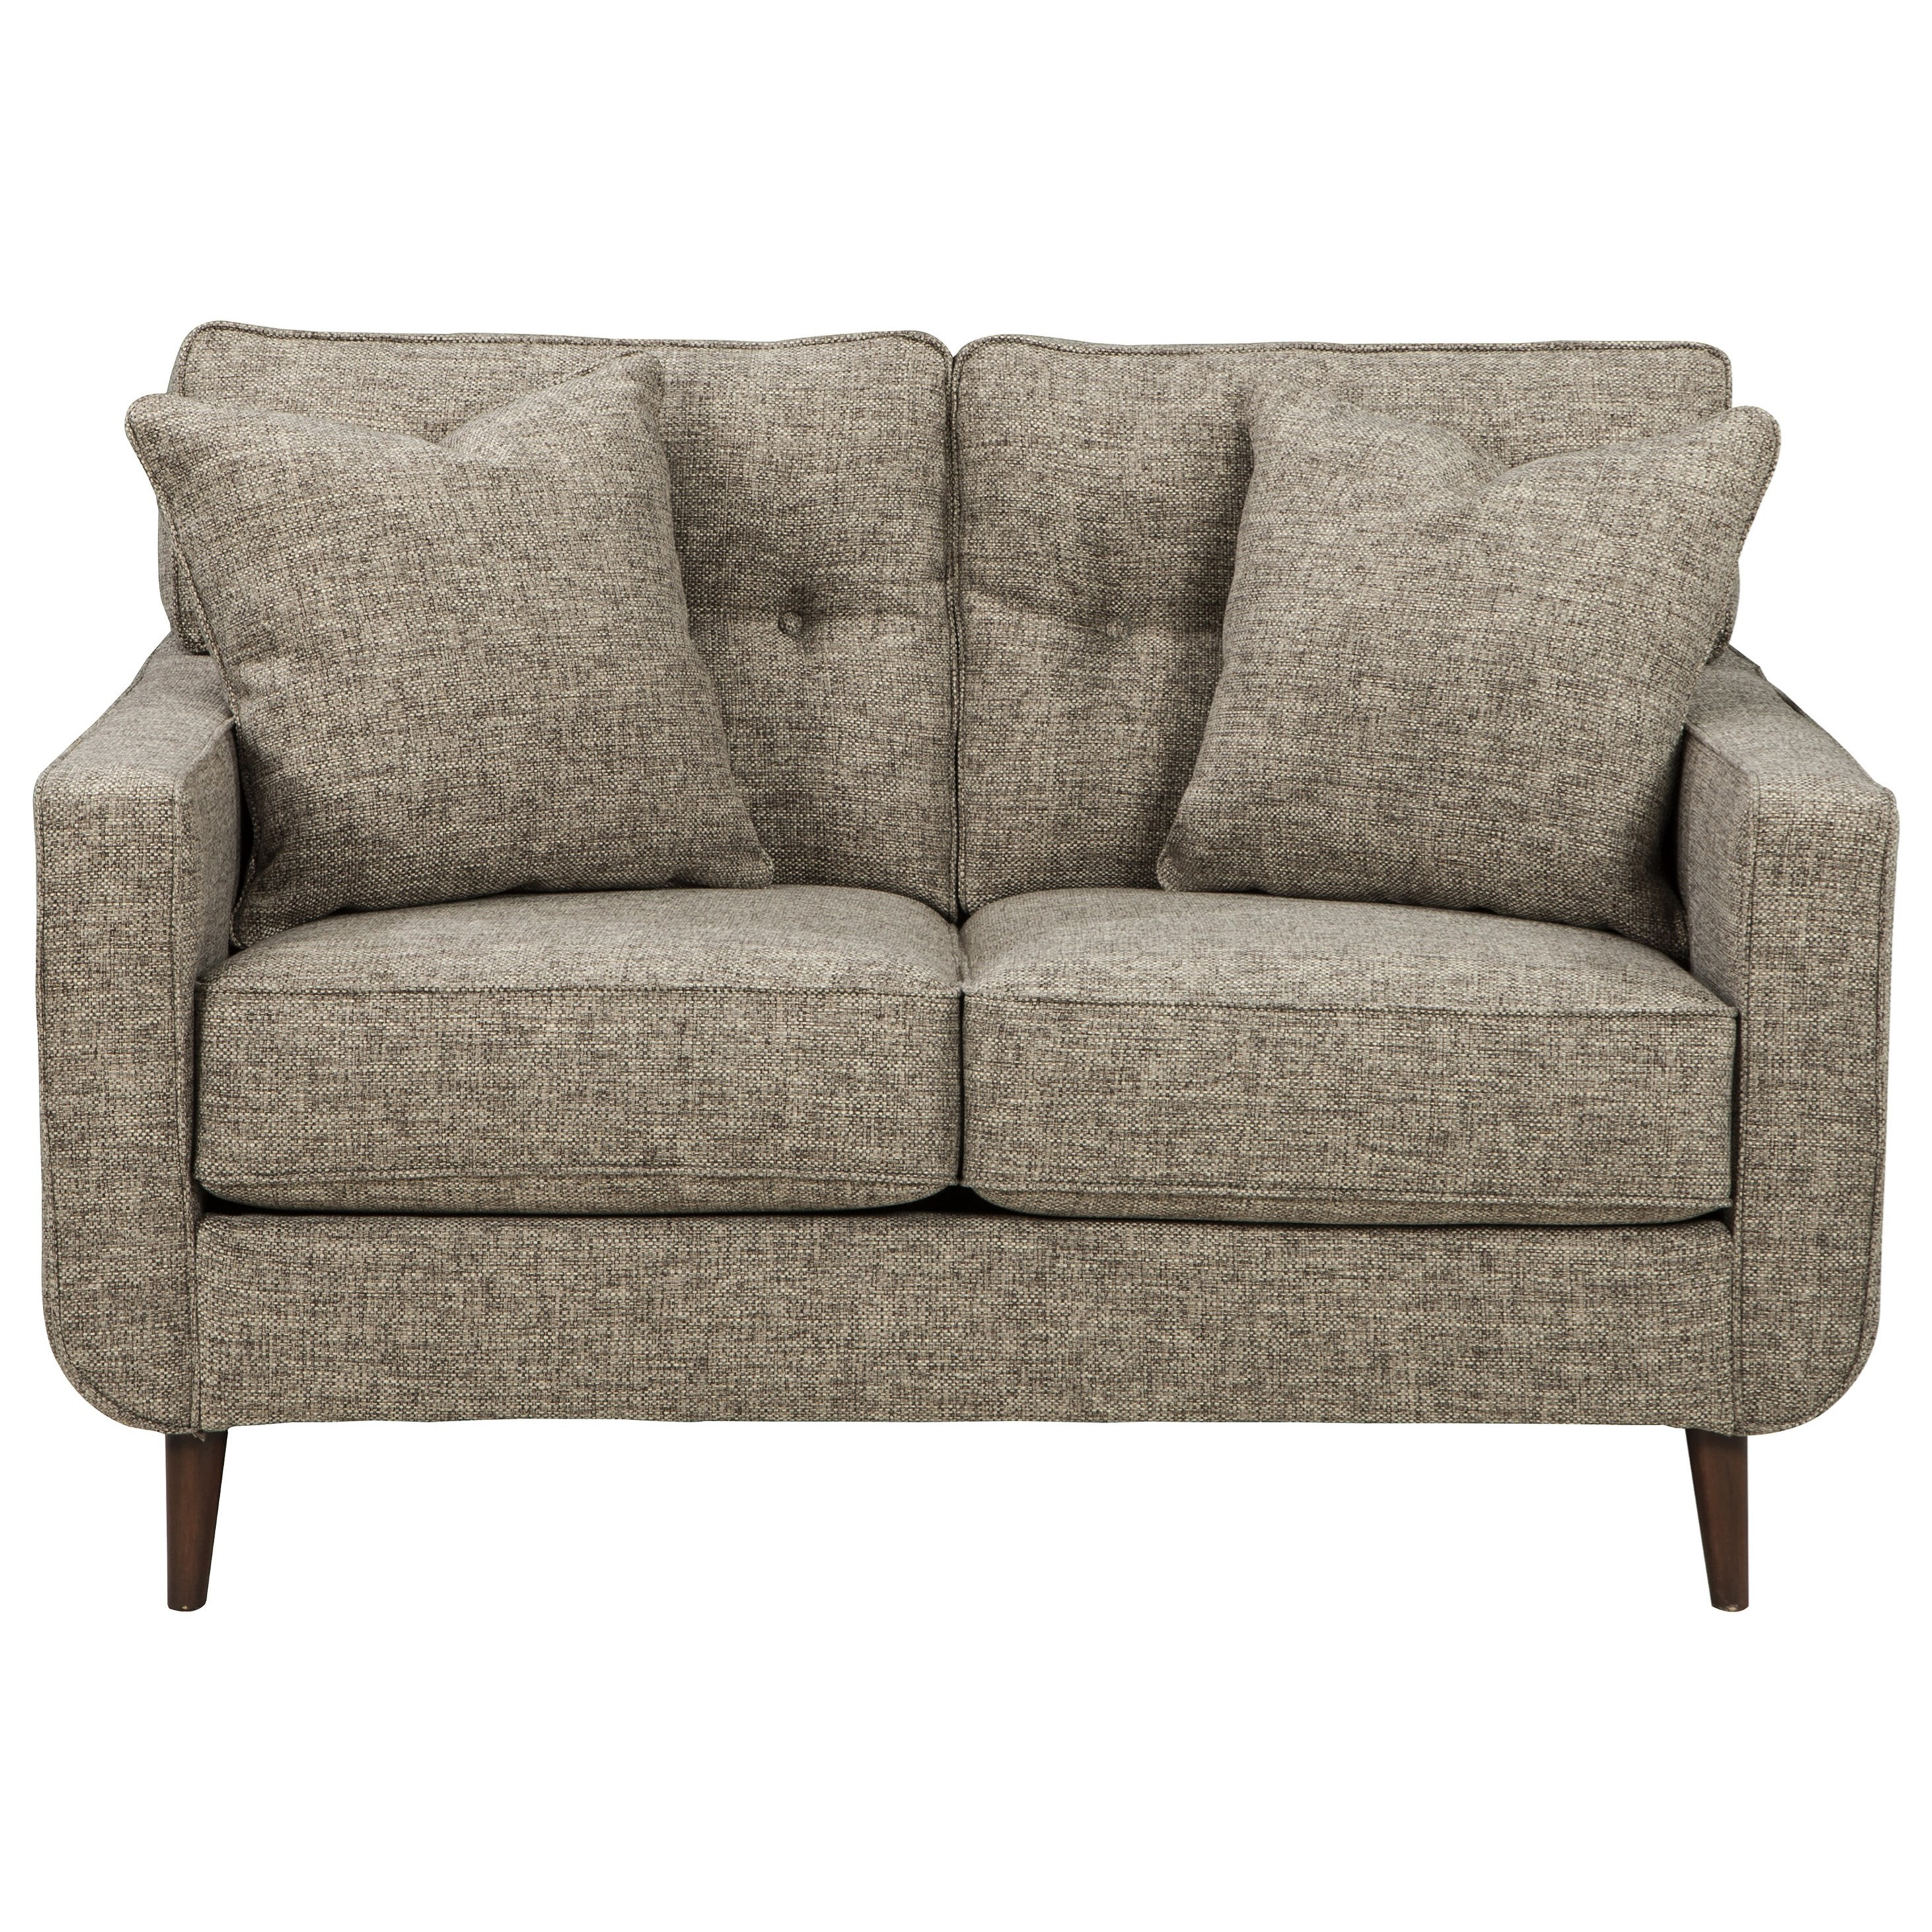 Dahra Loveseat by Benchcraft at Northeast Factory Direct